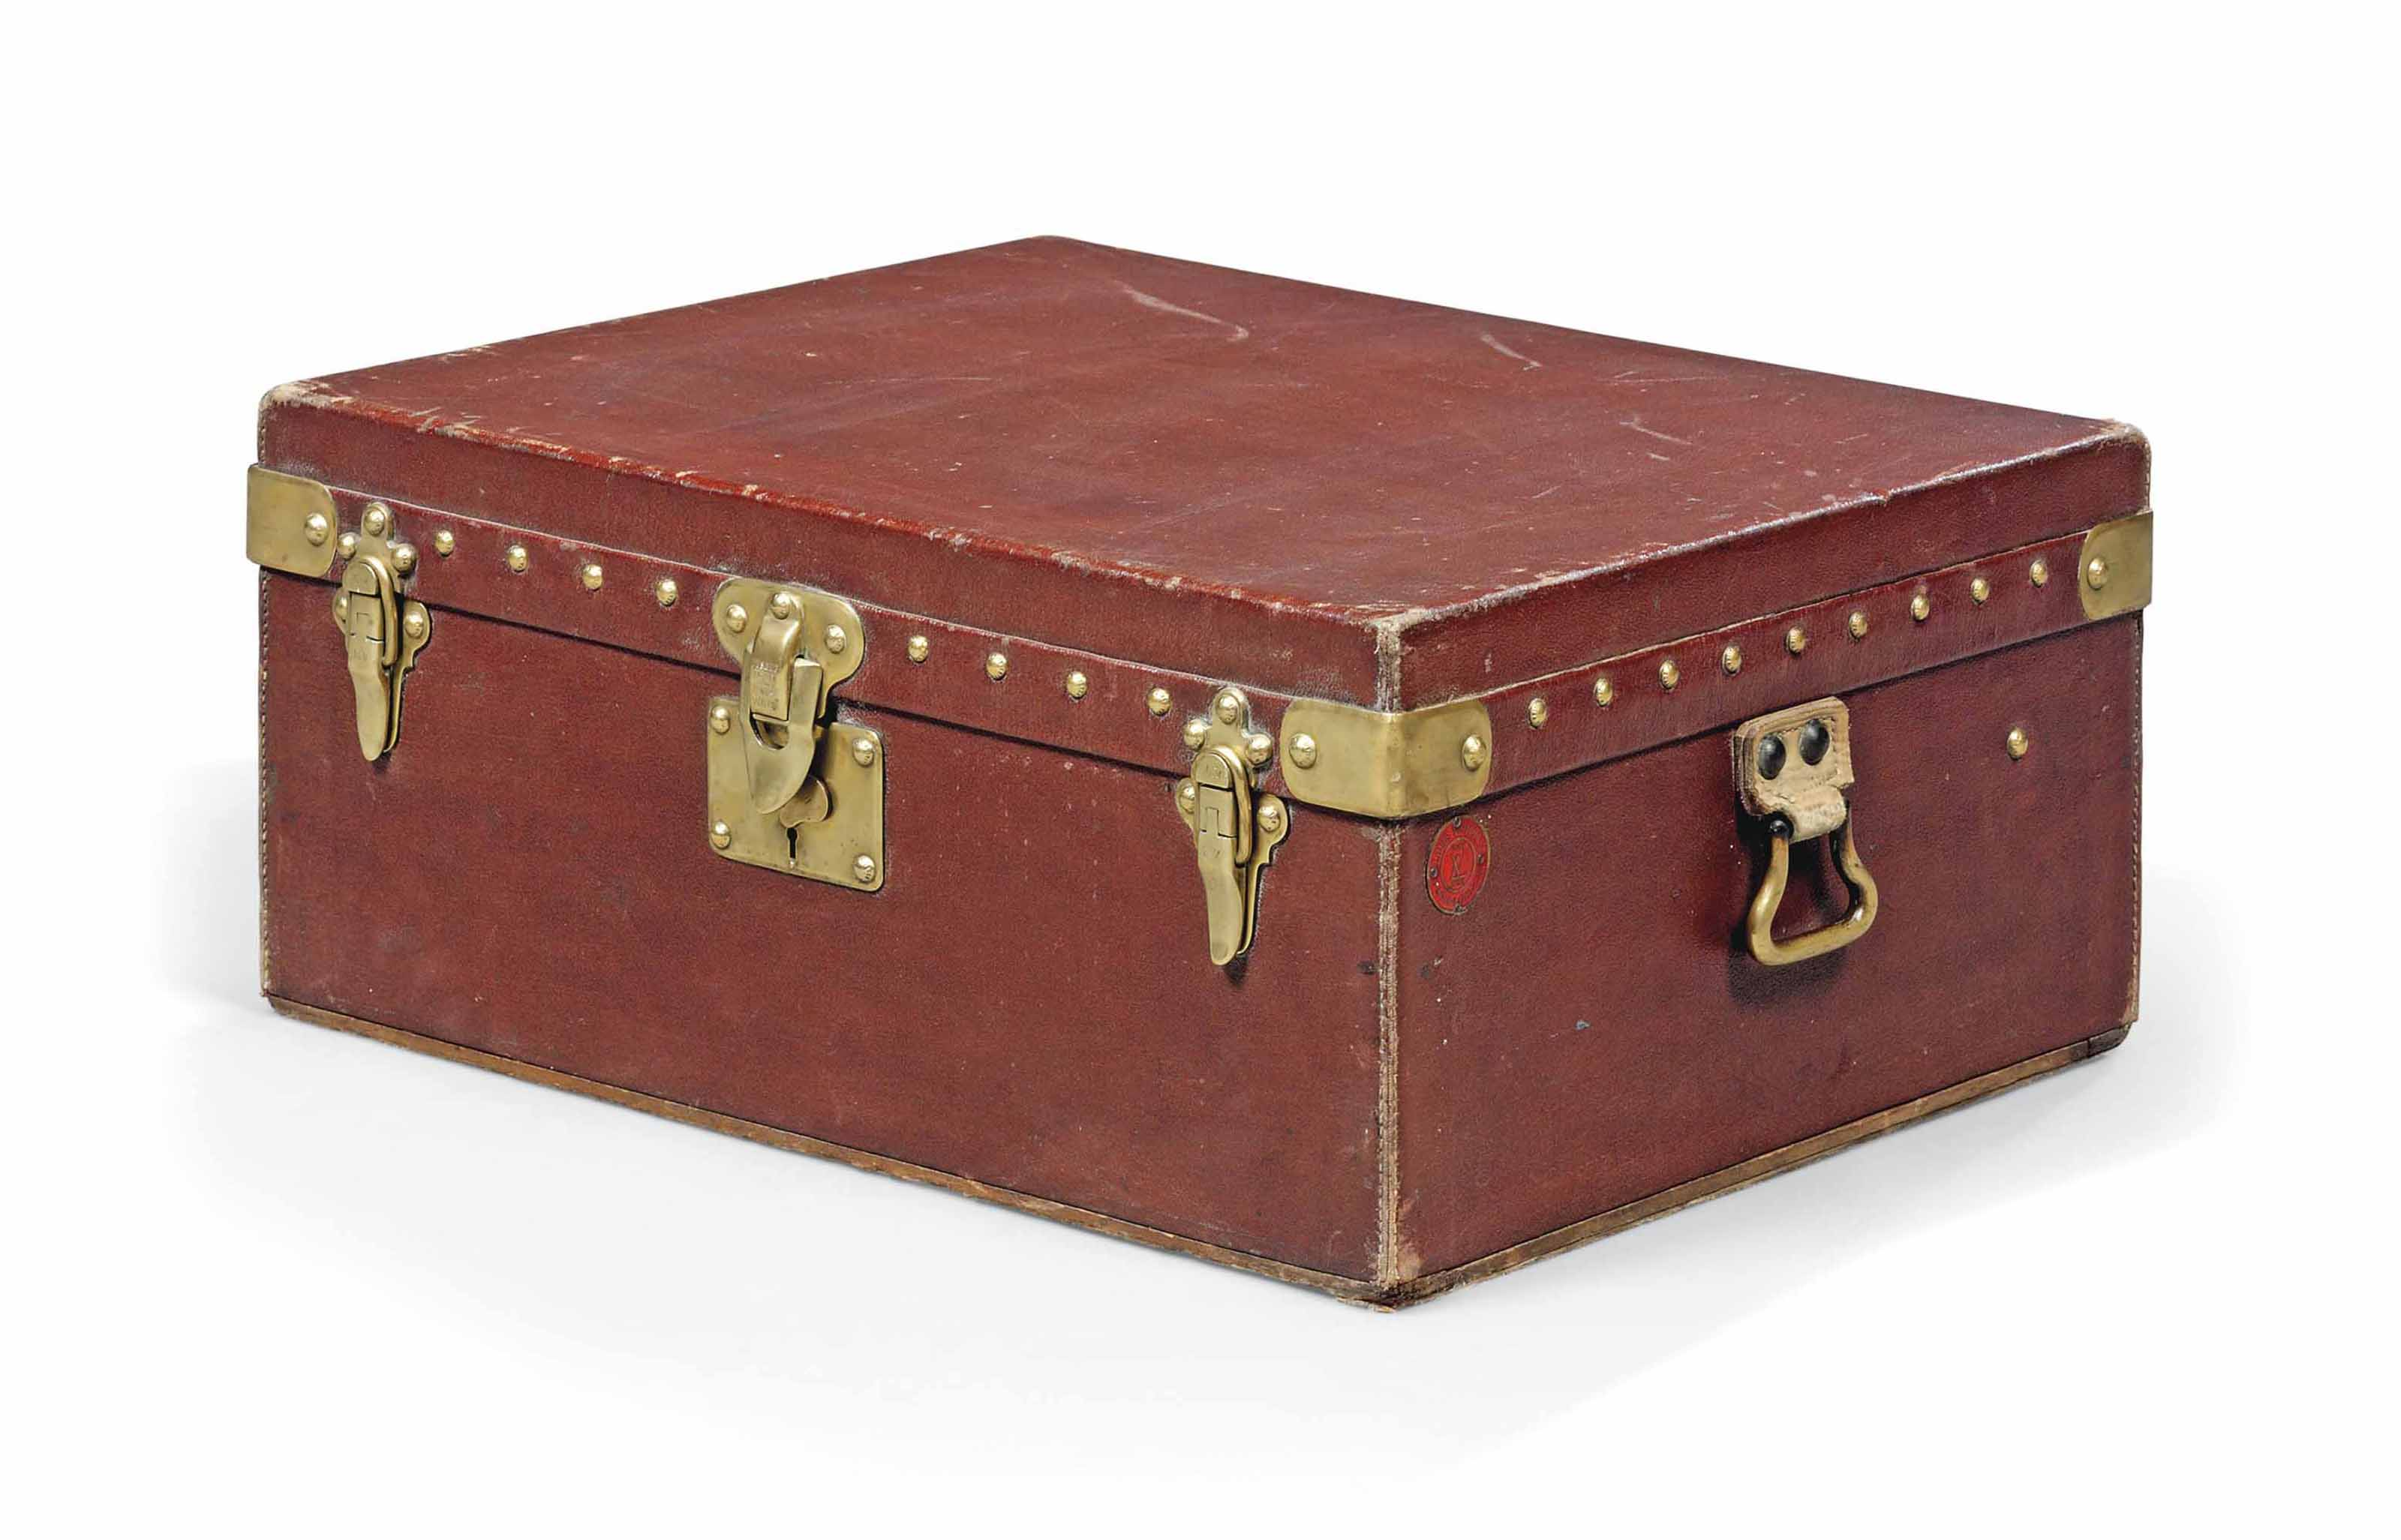 A MOTORING TRUNK IN BRICK RED